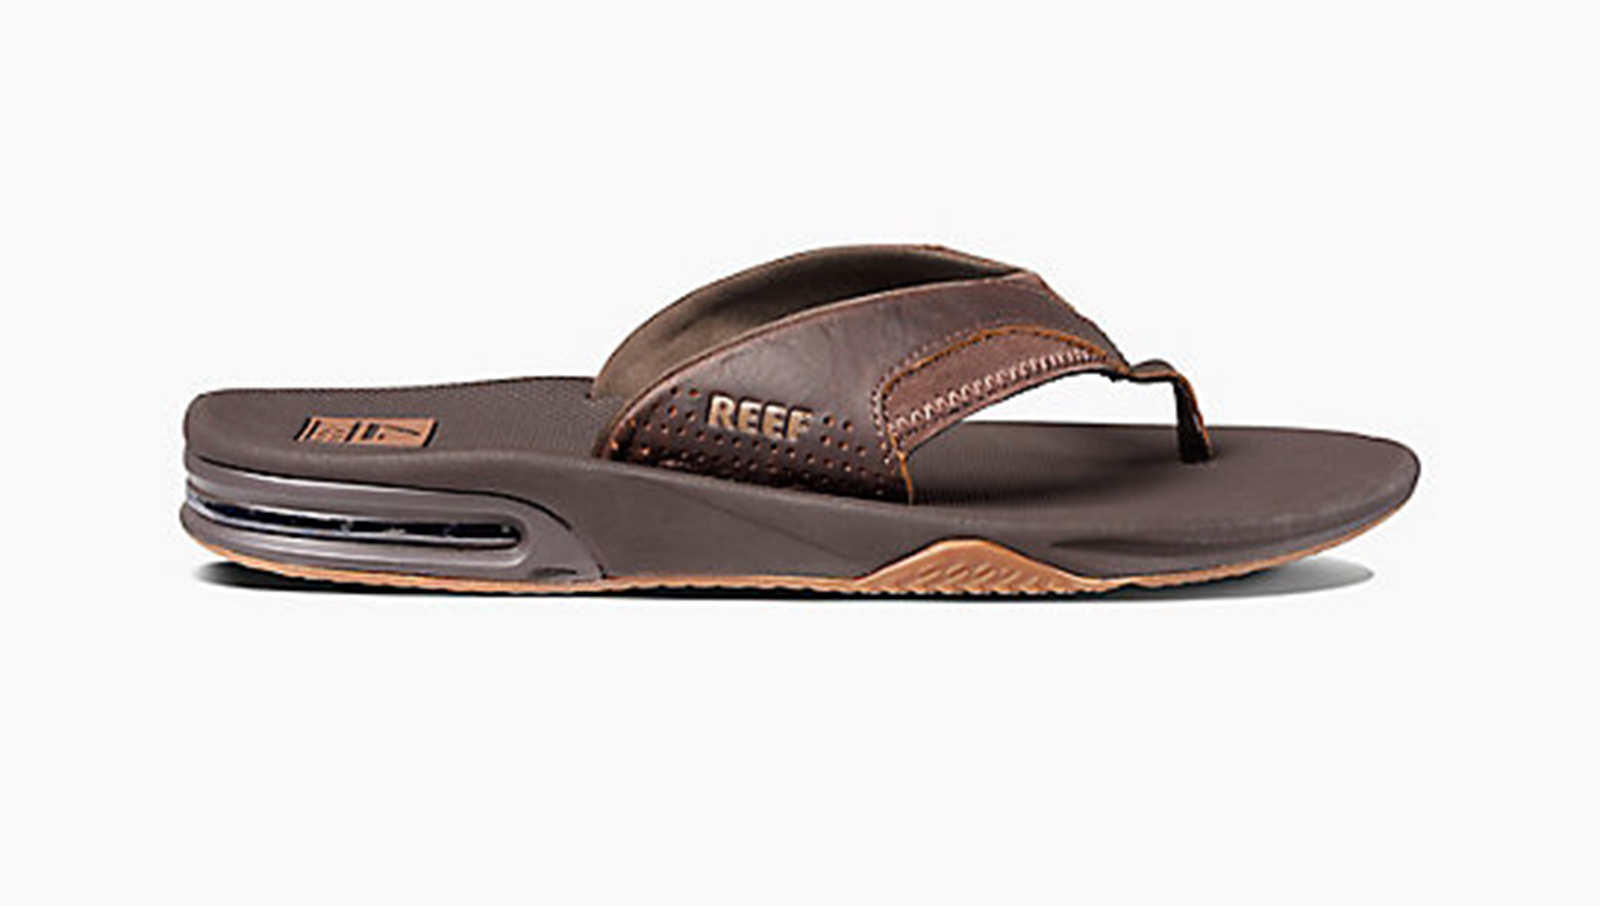 375df4e418f1 ... Brown flip-flops with integrated bottle opener - LEATHER FANNING BROWN  ...